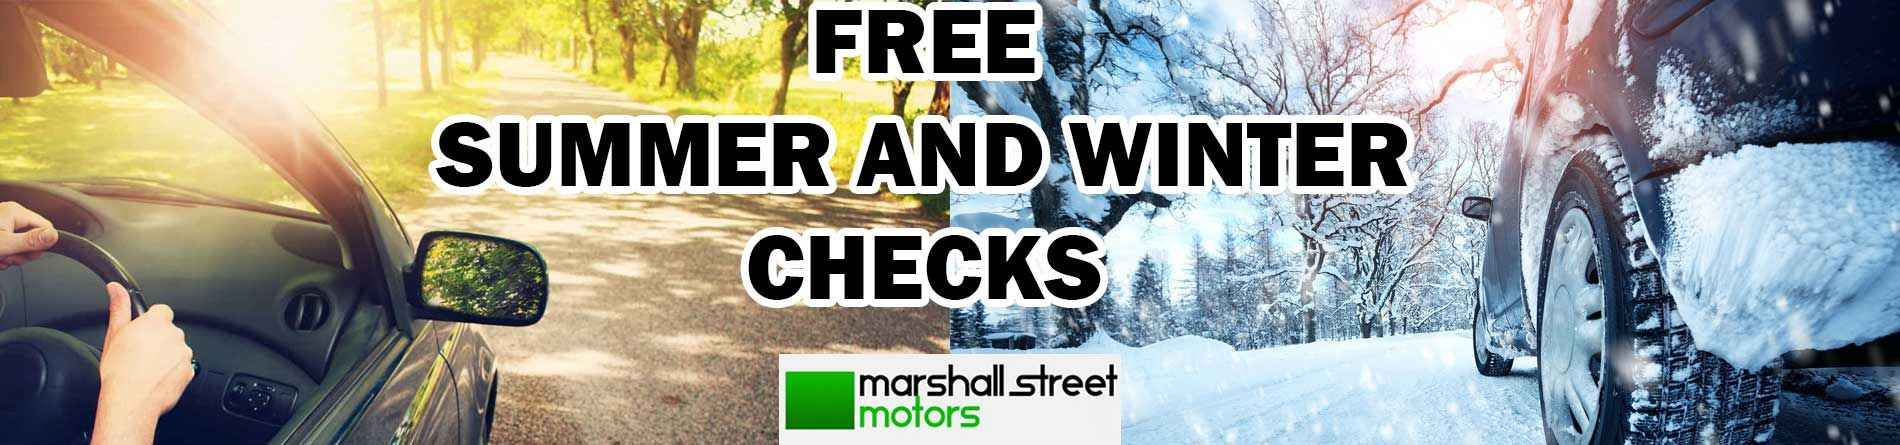 Marshal Street Motors- Summer/winter check